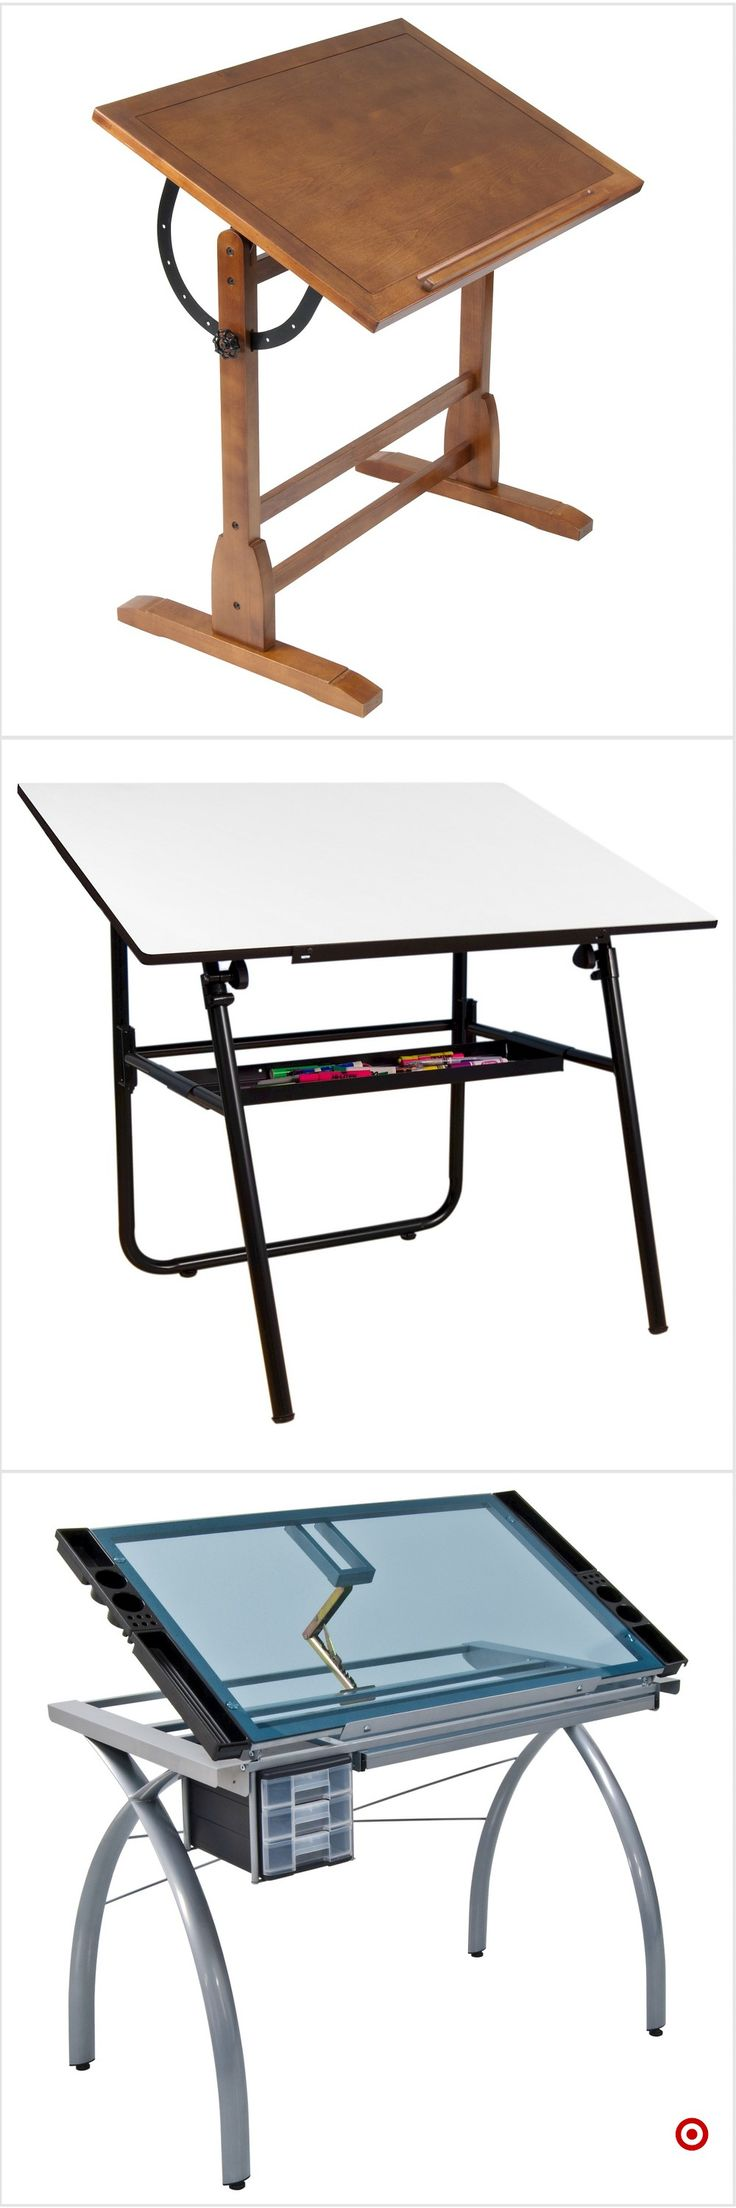 Shop Target for drafting tables you will love at great low prices. Free shipping on orders of $35+ or free same-day pick-up in store.